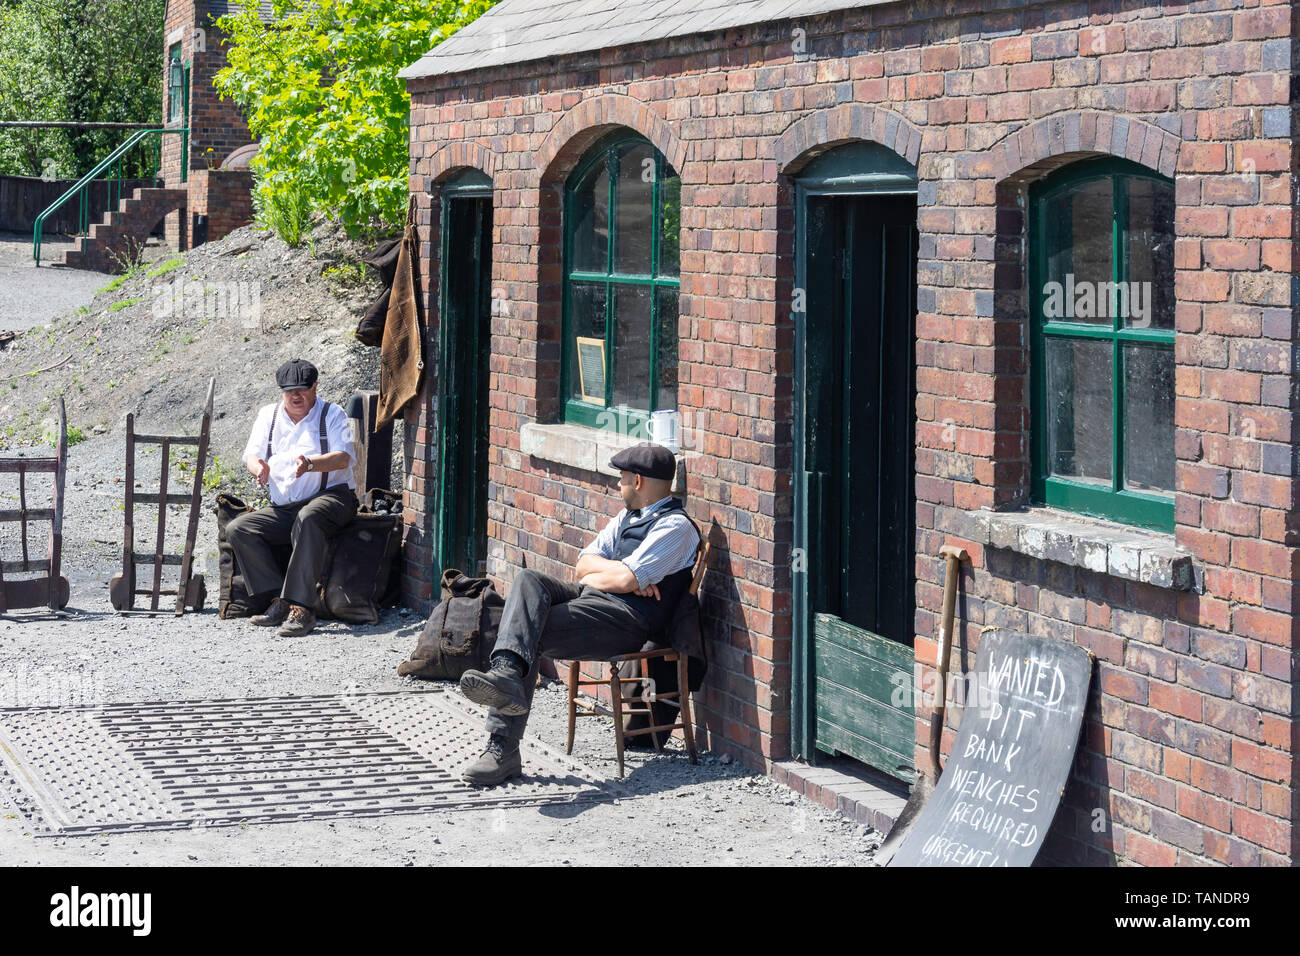 Workers outside colliery hut, Black Country Living Museum, Dudley, West Midlands, England, United Kingdom - Stock Image